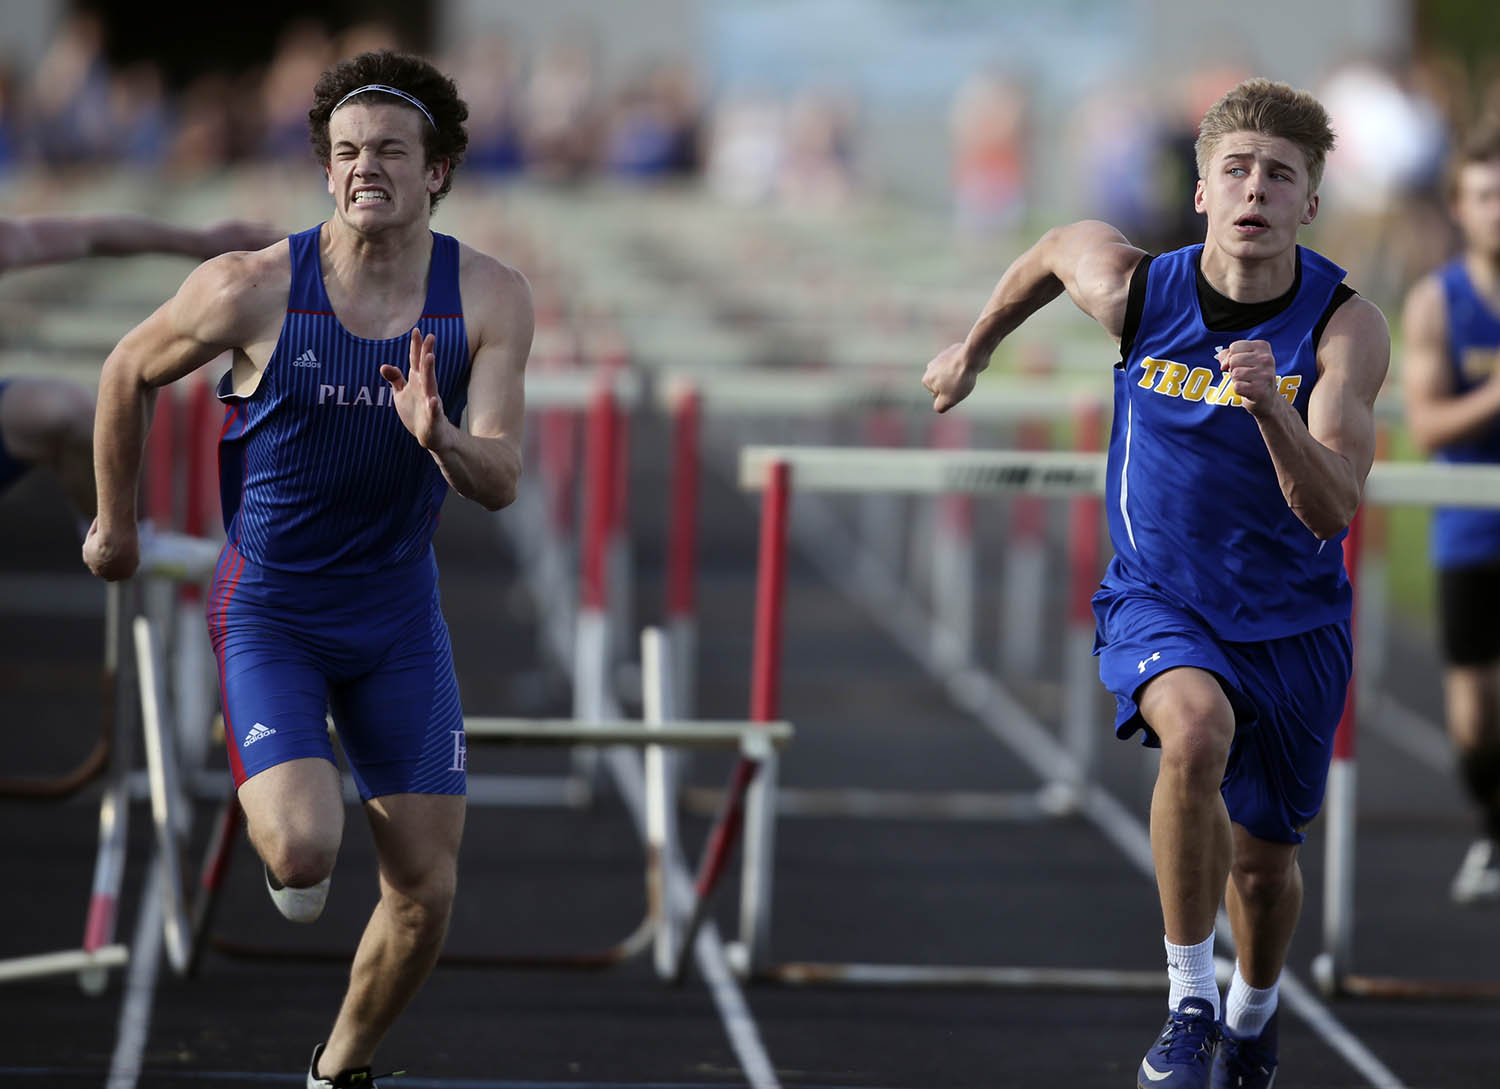 Maroa-Forsyth's Noah Holthaus peaks over at Pleasant Plains' Keigan Halford as he edges him out at the line to win the Boys 110m Hurdles with a time of 15.68 to Halford's 15.75 during the Sangamo Conference Track Meet at Pleasant Plains High School, Wednesday, May 1, 2019, in Pleasant Plains, Ill. [Justin L. Fowler/The State Journal-Register]